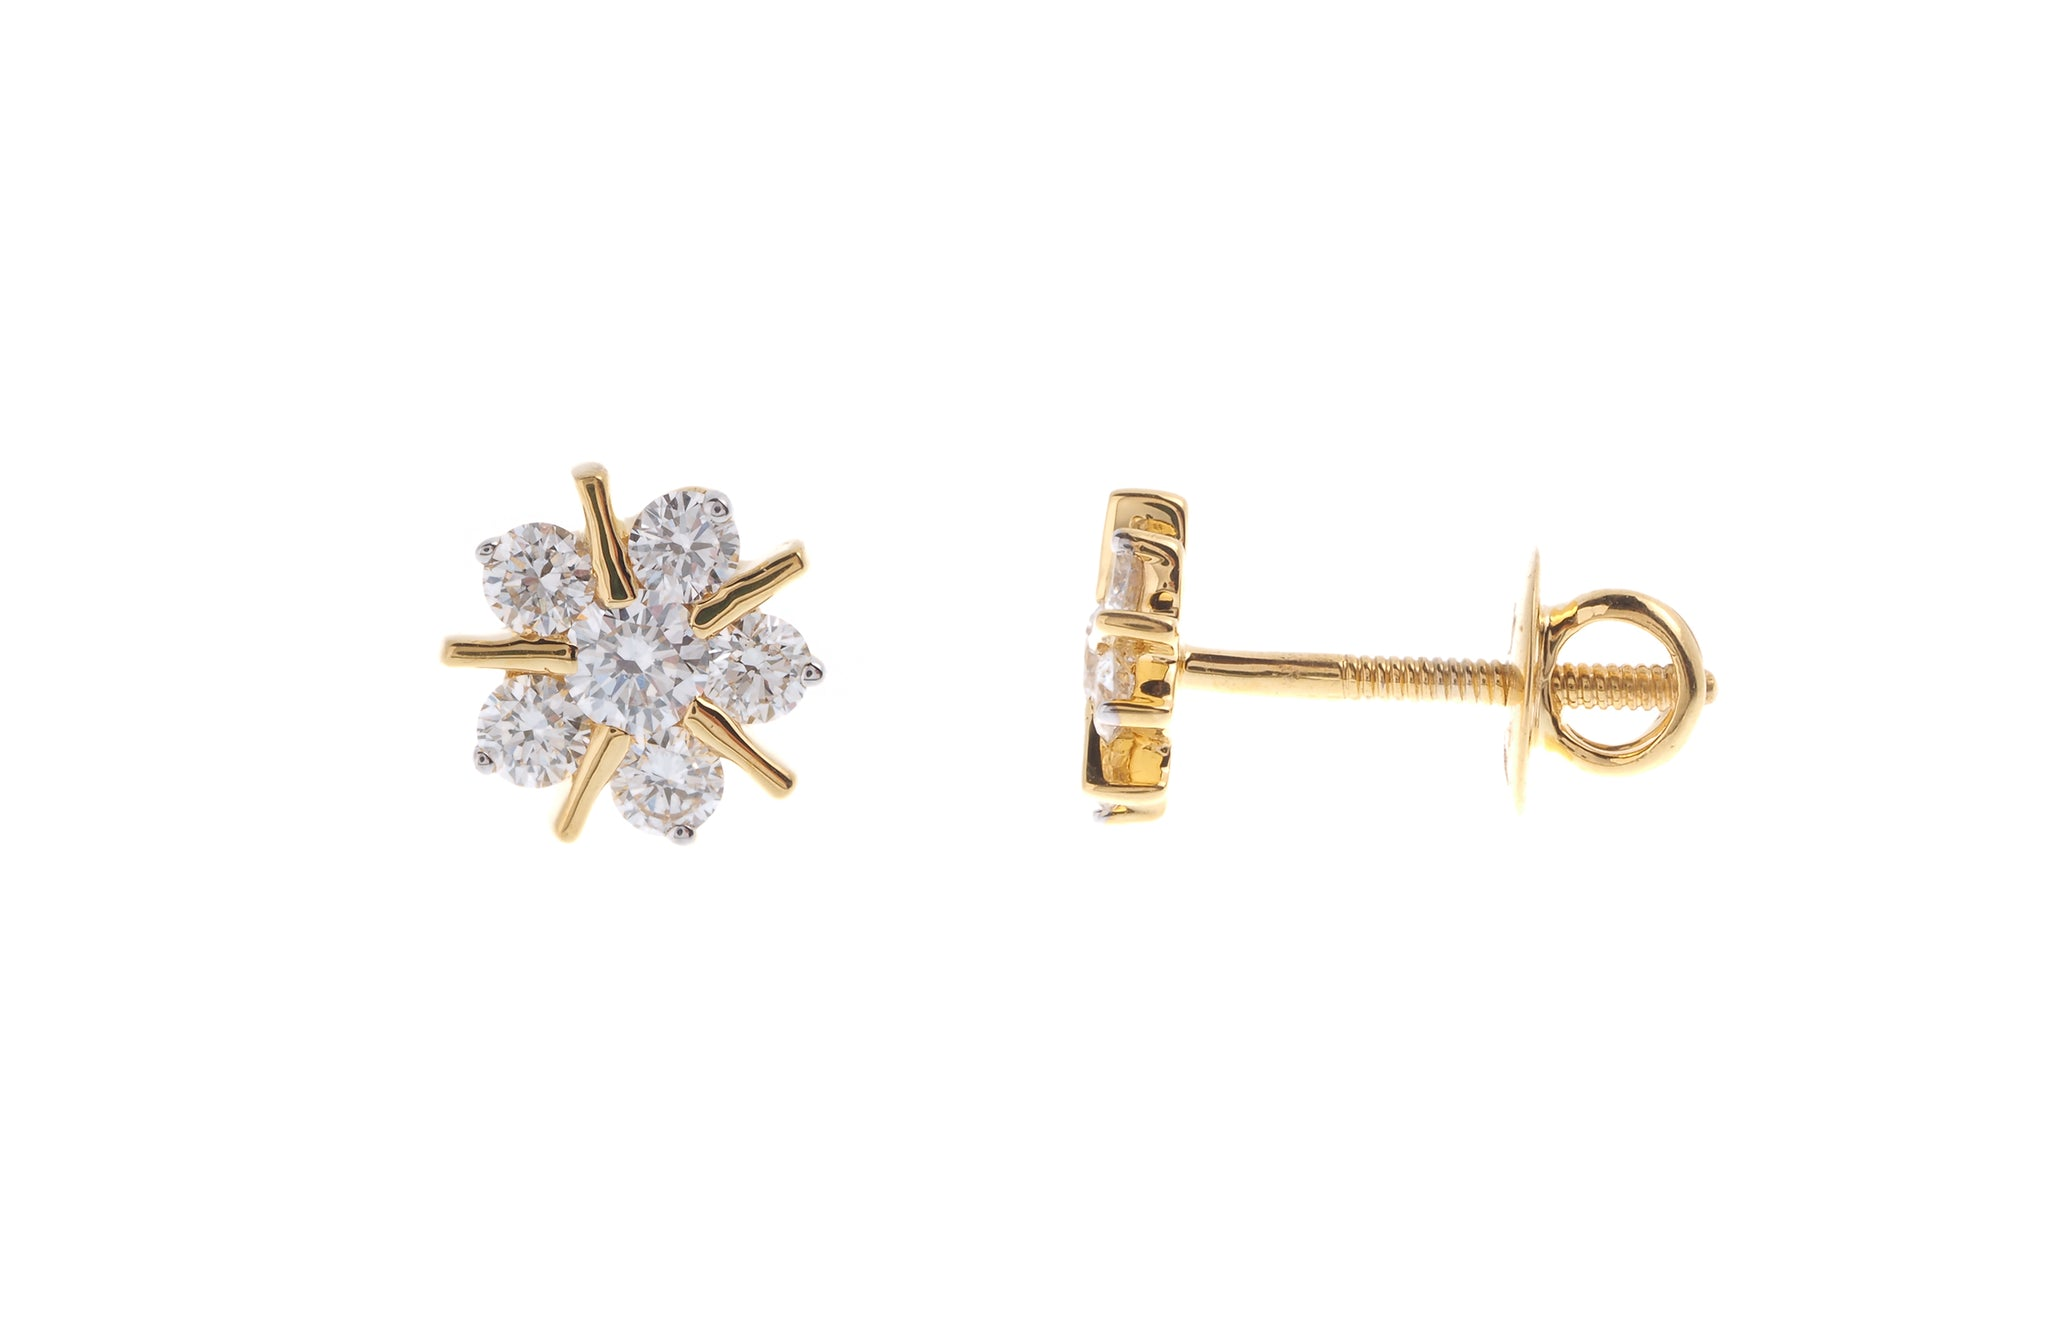 18ct Yellow Gold 0.36ct Diamond Cluster Stud Earrings (MCS2738)